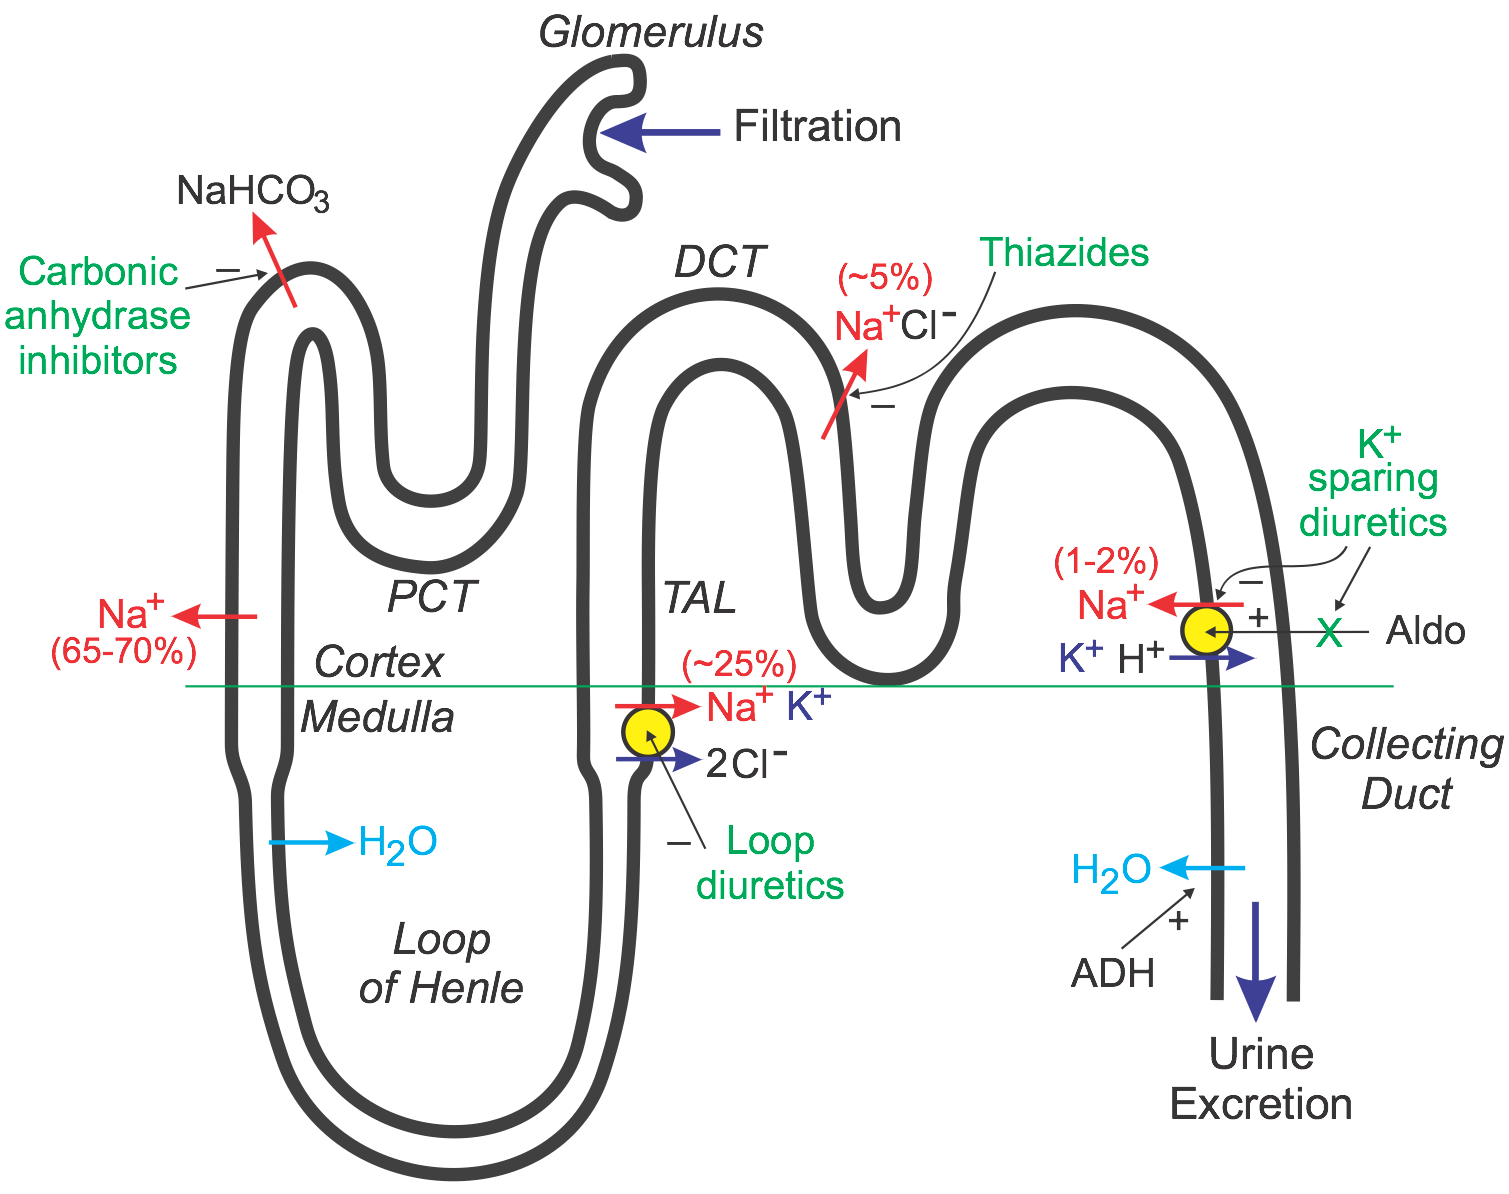 cv pharmacology | diuretics, Skeleton